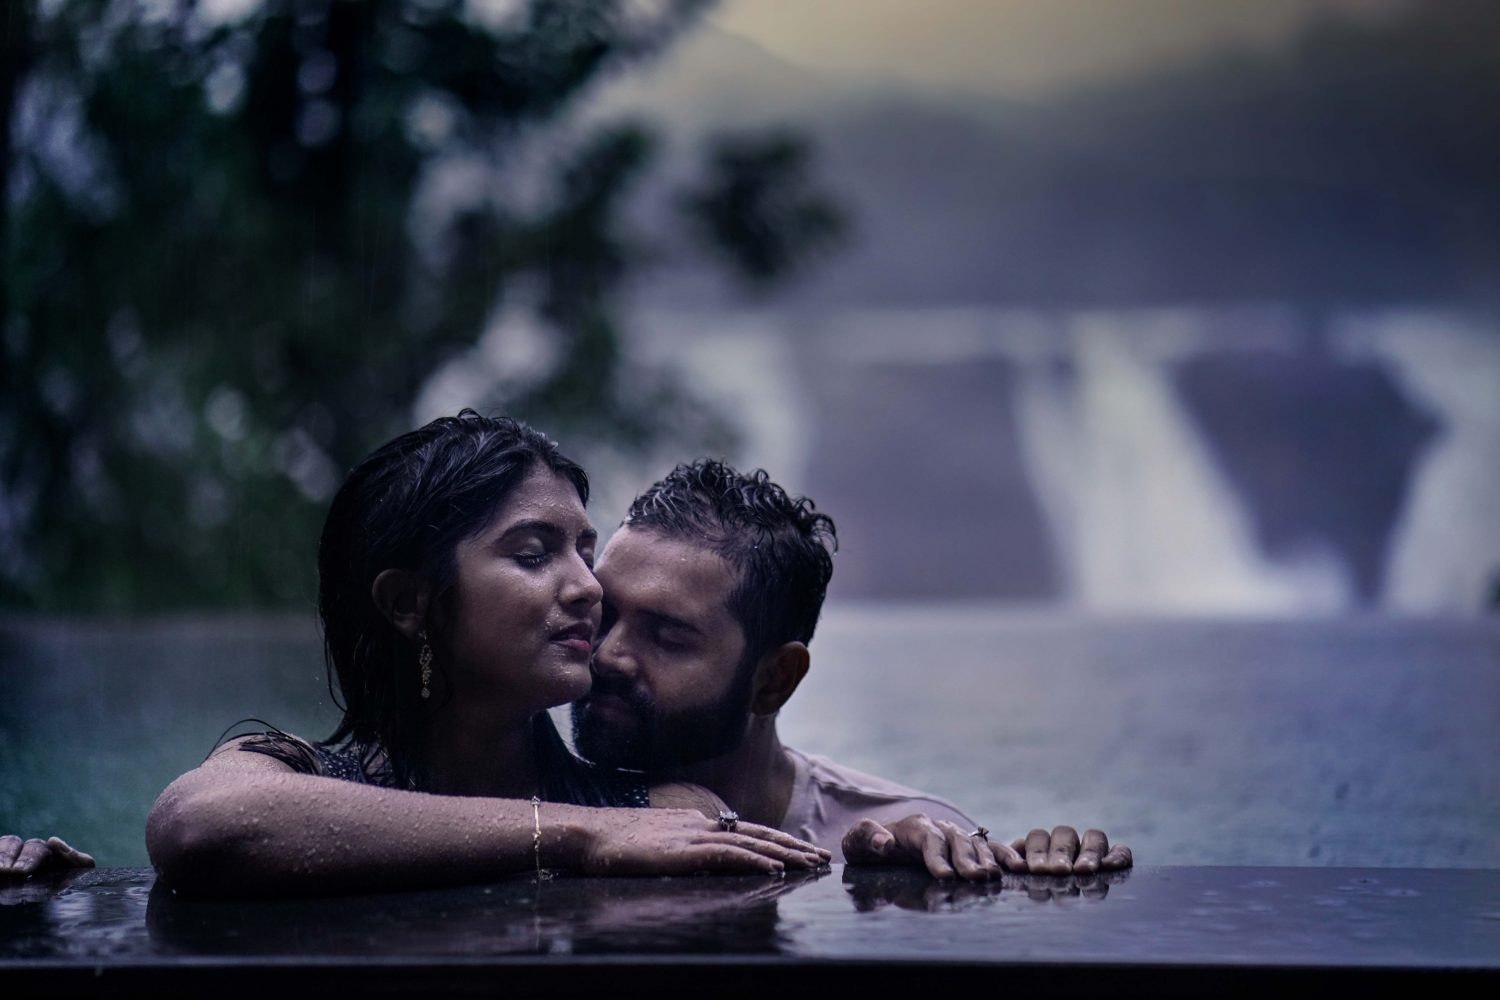 You with me and me with you, bonded together in monsoon shower!. In this romantic soothing breeze, I wish the fragrance of our love and beauty stays forever.